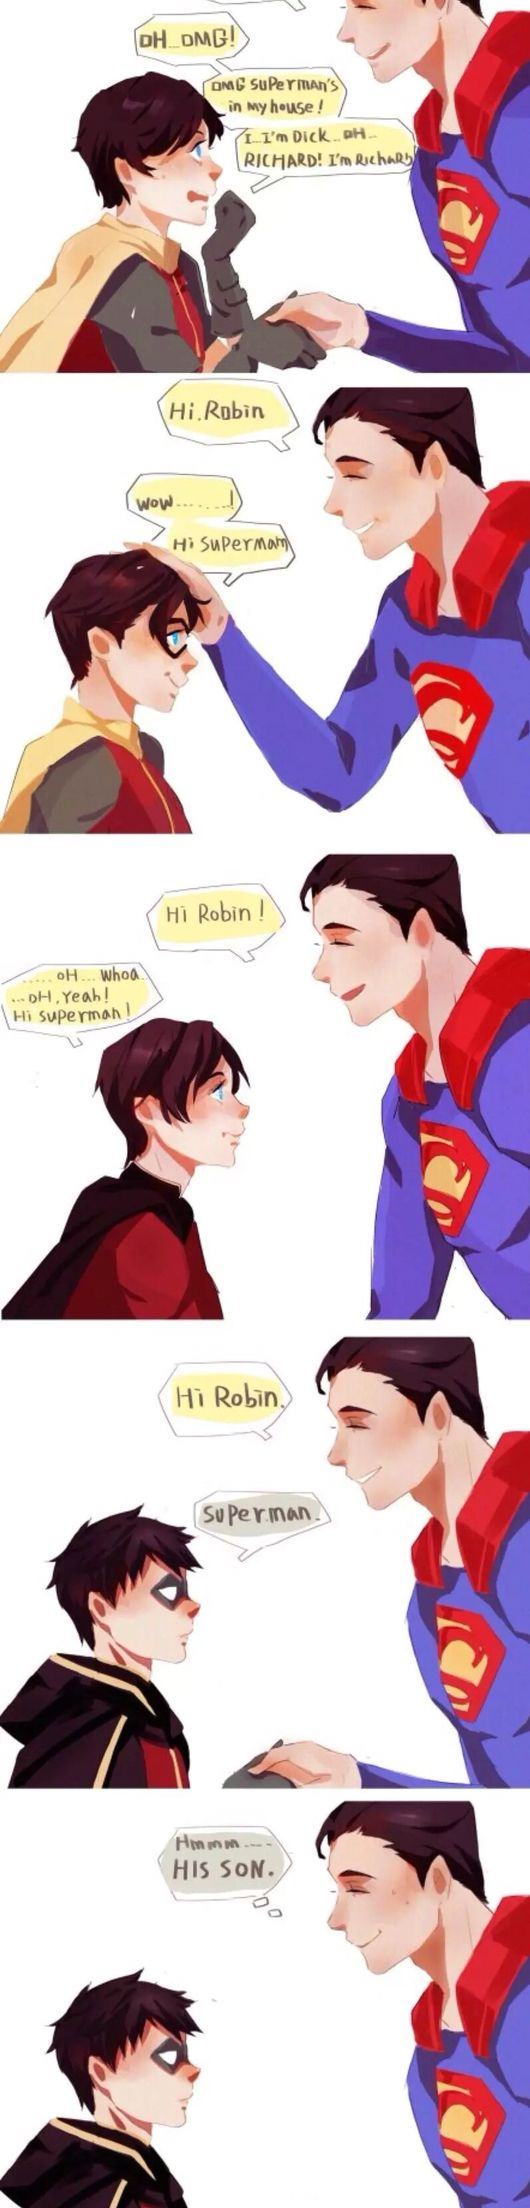 Robins meet Superman<<Damien ain't impressed by shit.